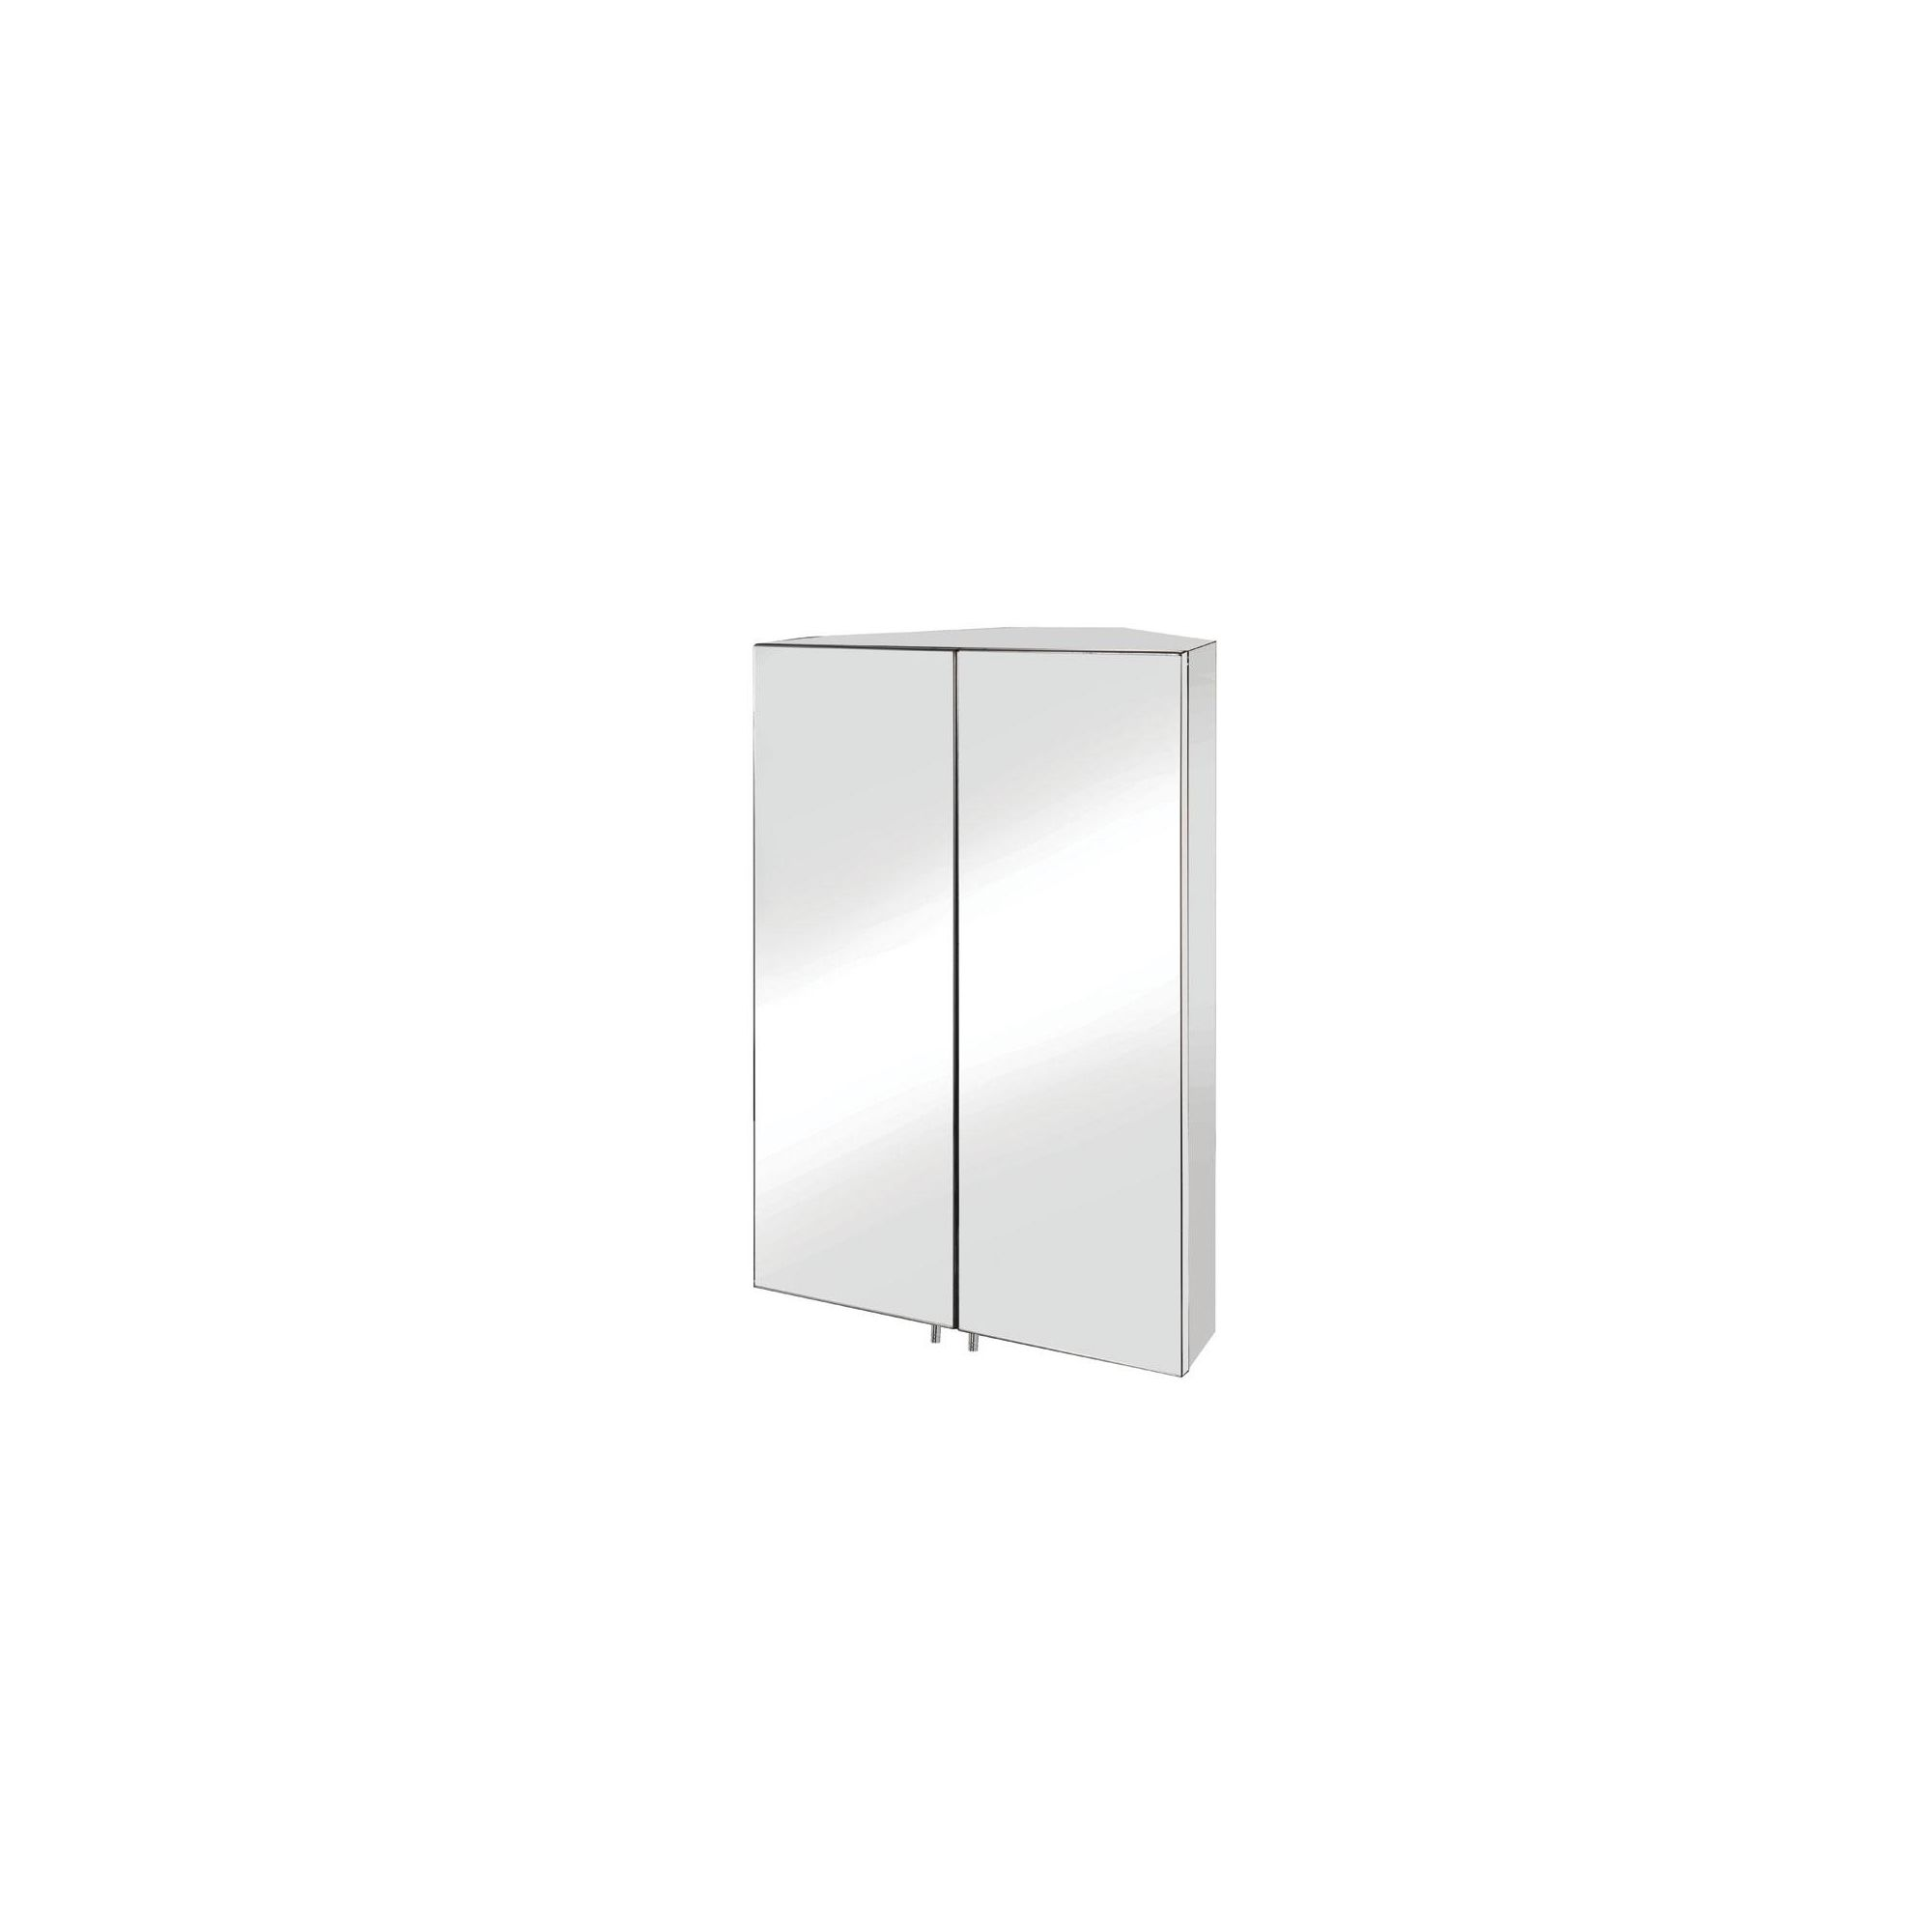 Croydex Avisio Double Door Stainless Steel Corner Bathroom Cabinet